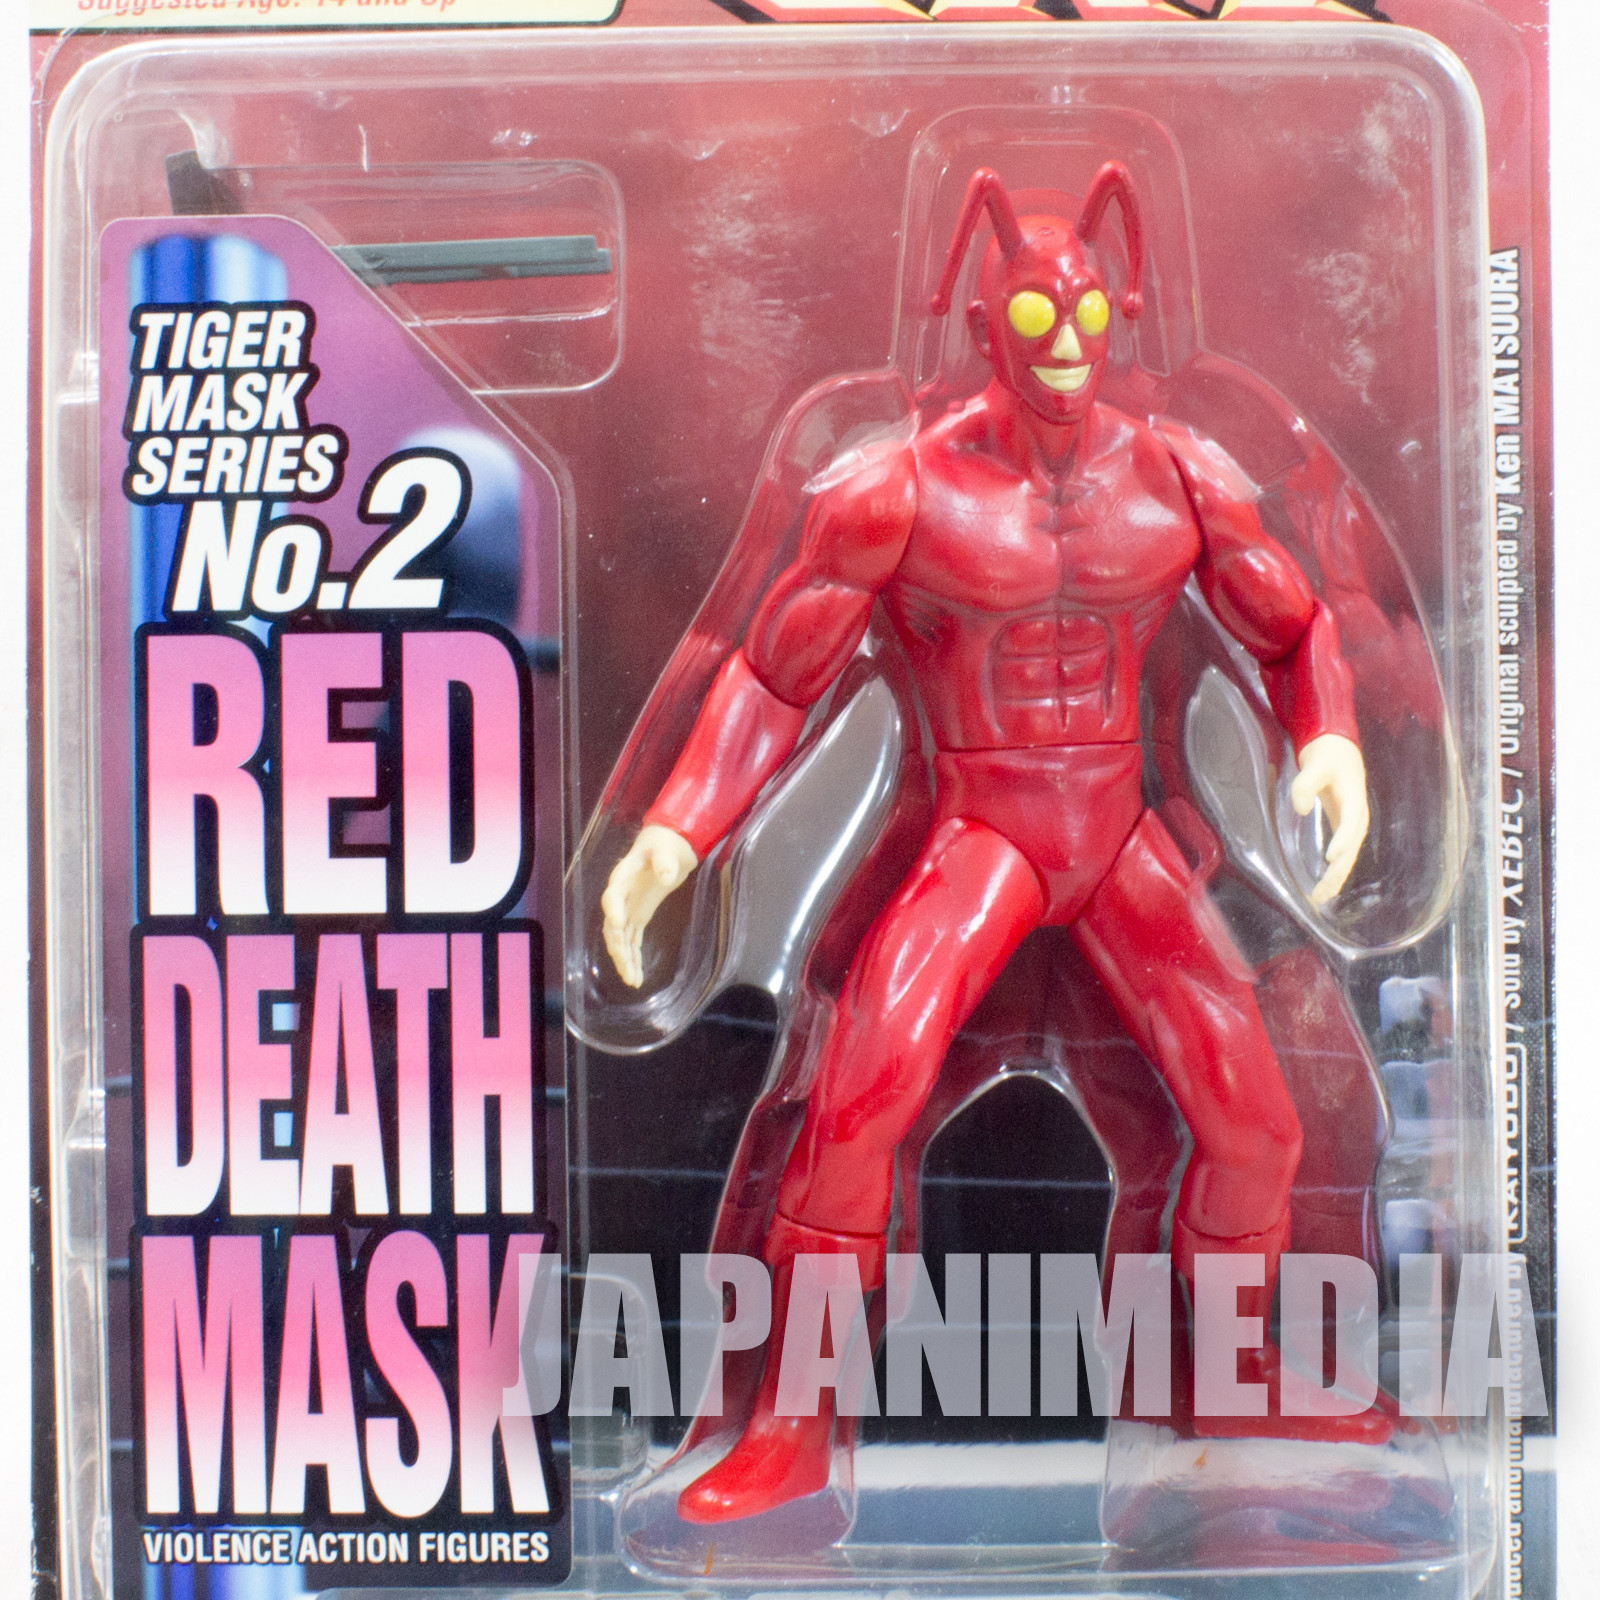 Tiger Mask Red Death Mask Violence Action Figure JAPAN ANIME MANGA Pro Wrestling